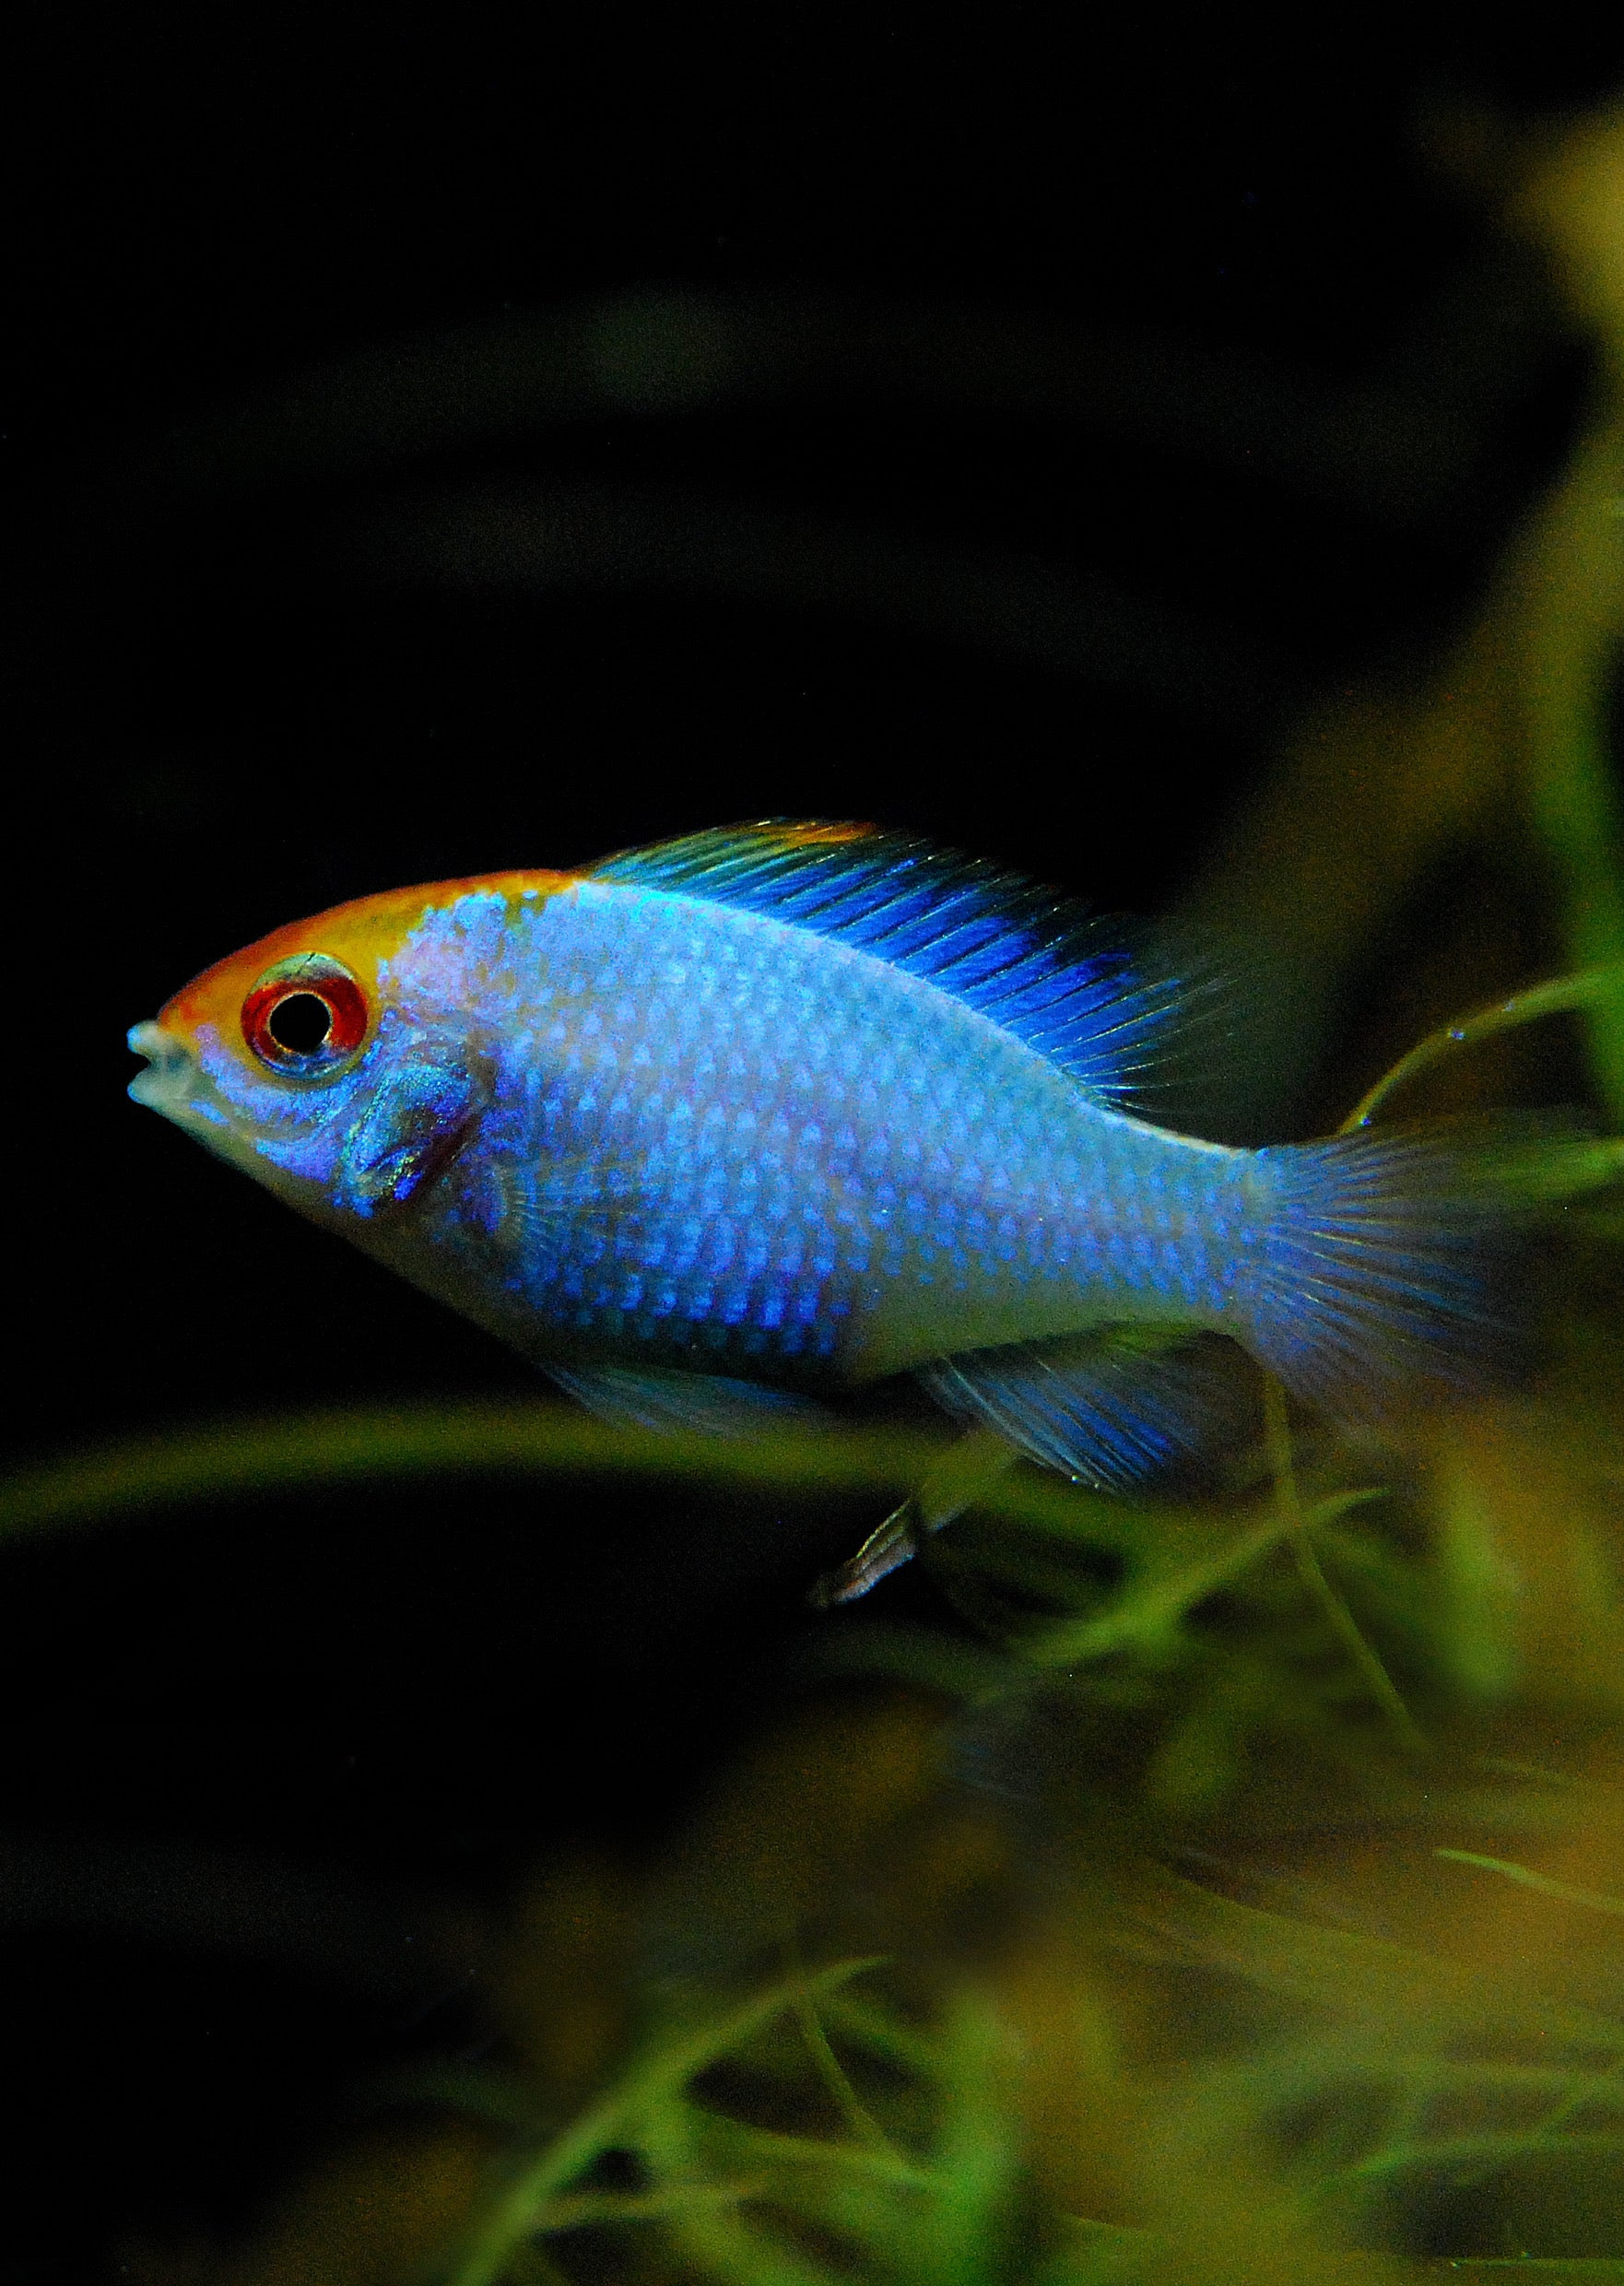 Electric Blue Ramirezi